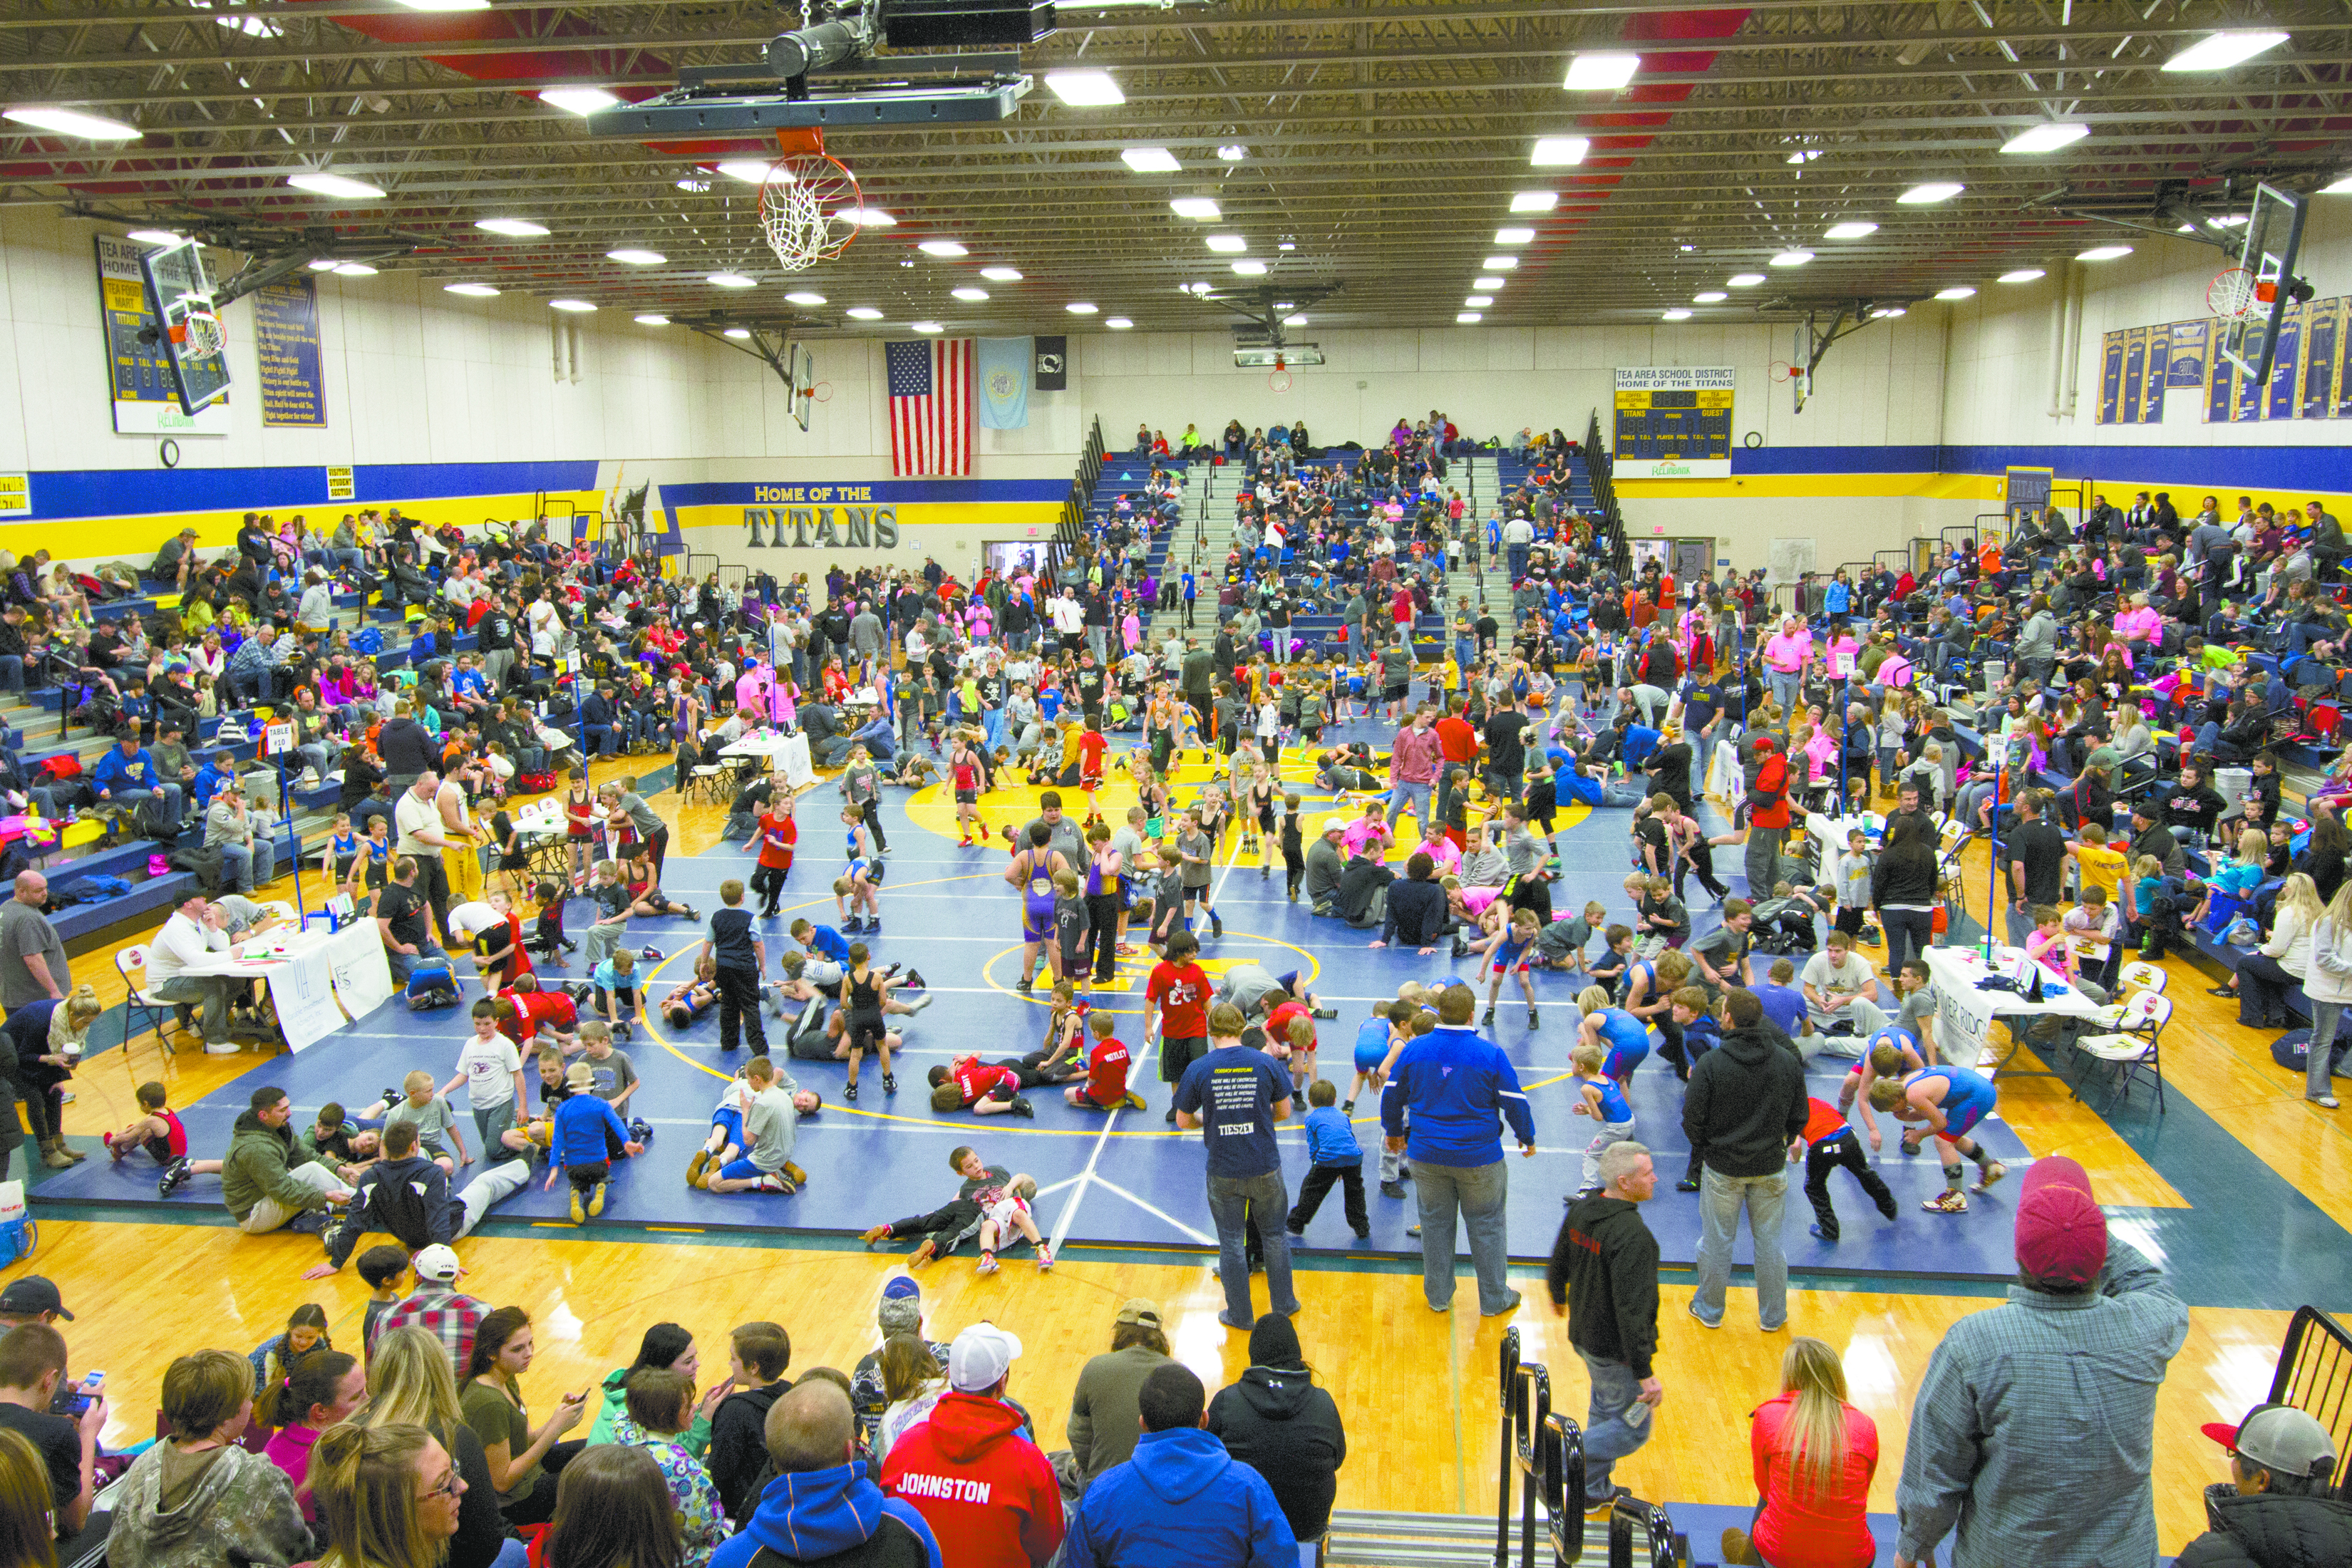 Youth wrestling tournament draws 500 wrestlers | Tea Weekly